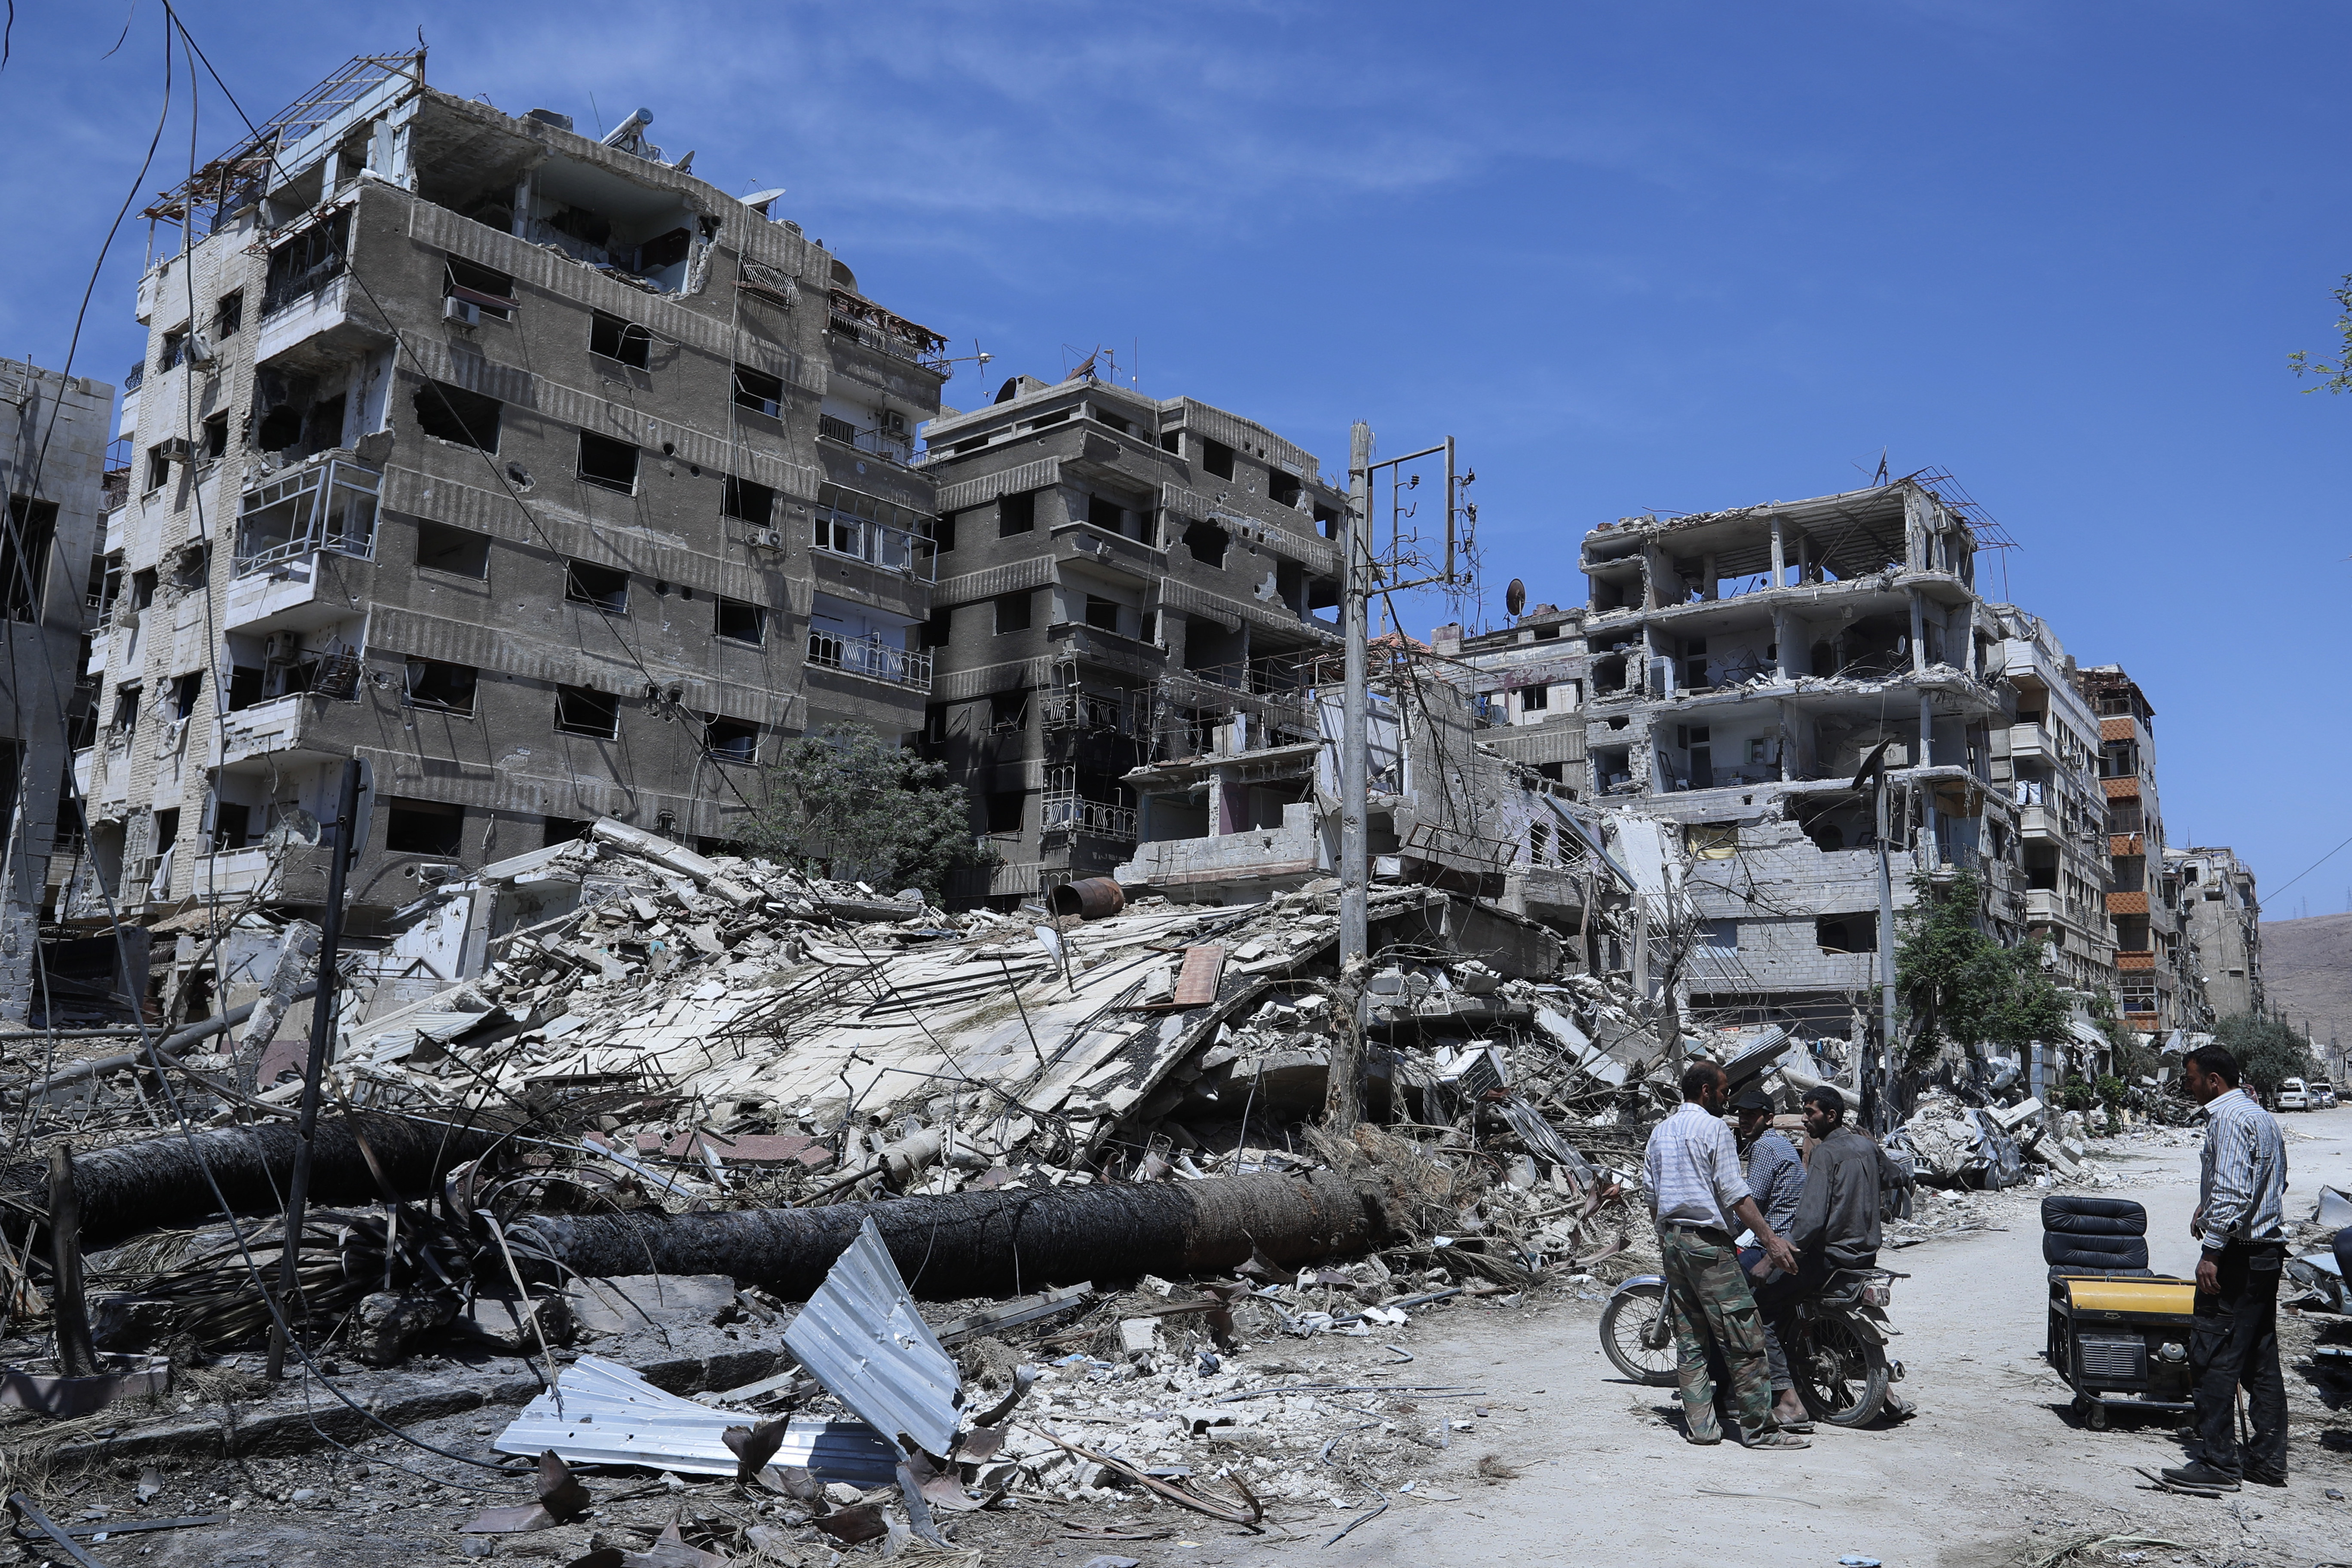 People stand in front of damaged buildings, in the town of Douma, the site of a suspected chemical weapons attack, near Damascus, Syria, April 16, 2018.